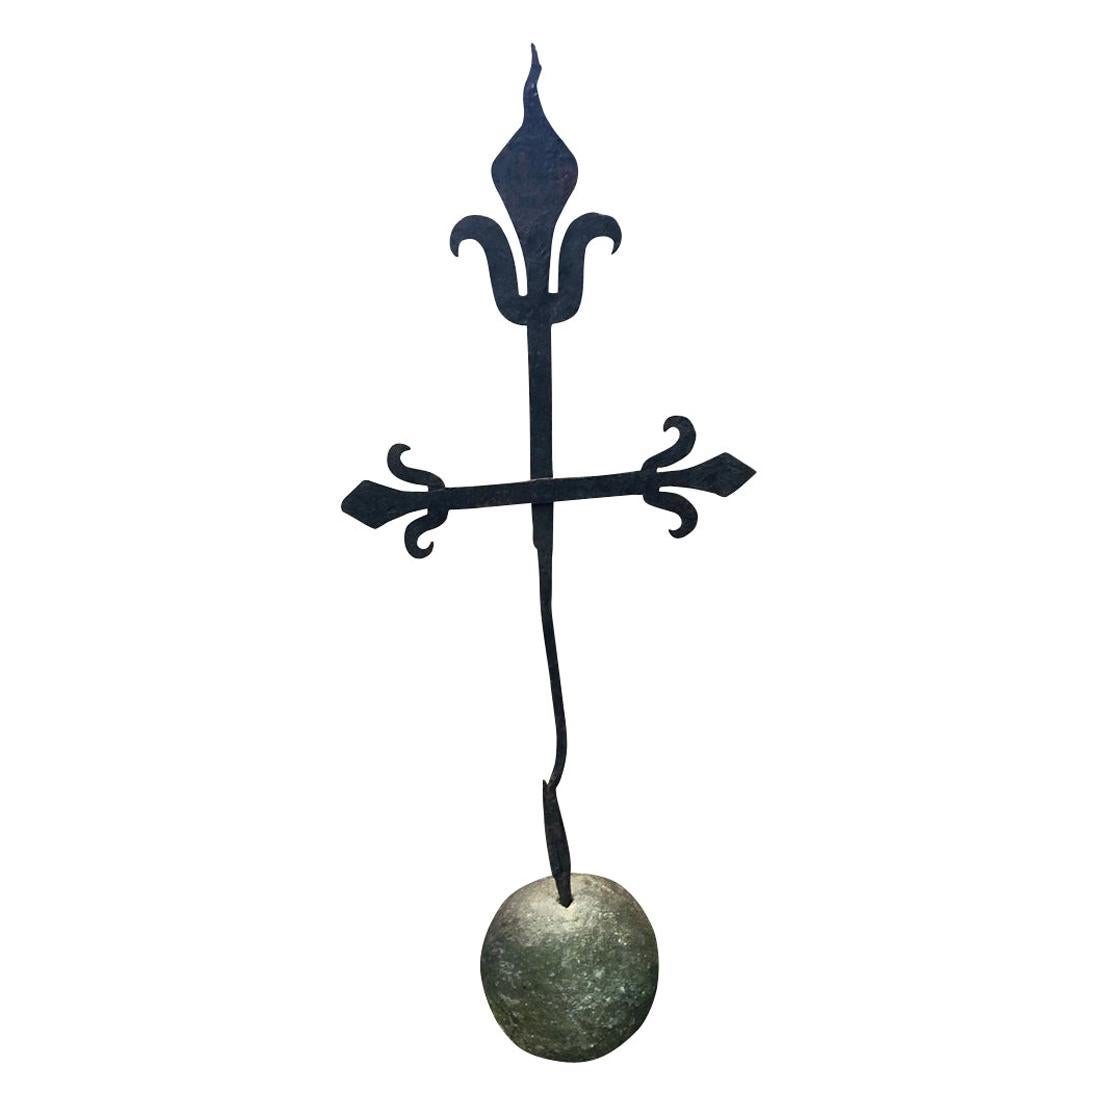 16th Century Spanish Iron Cross